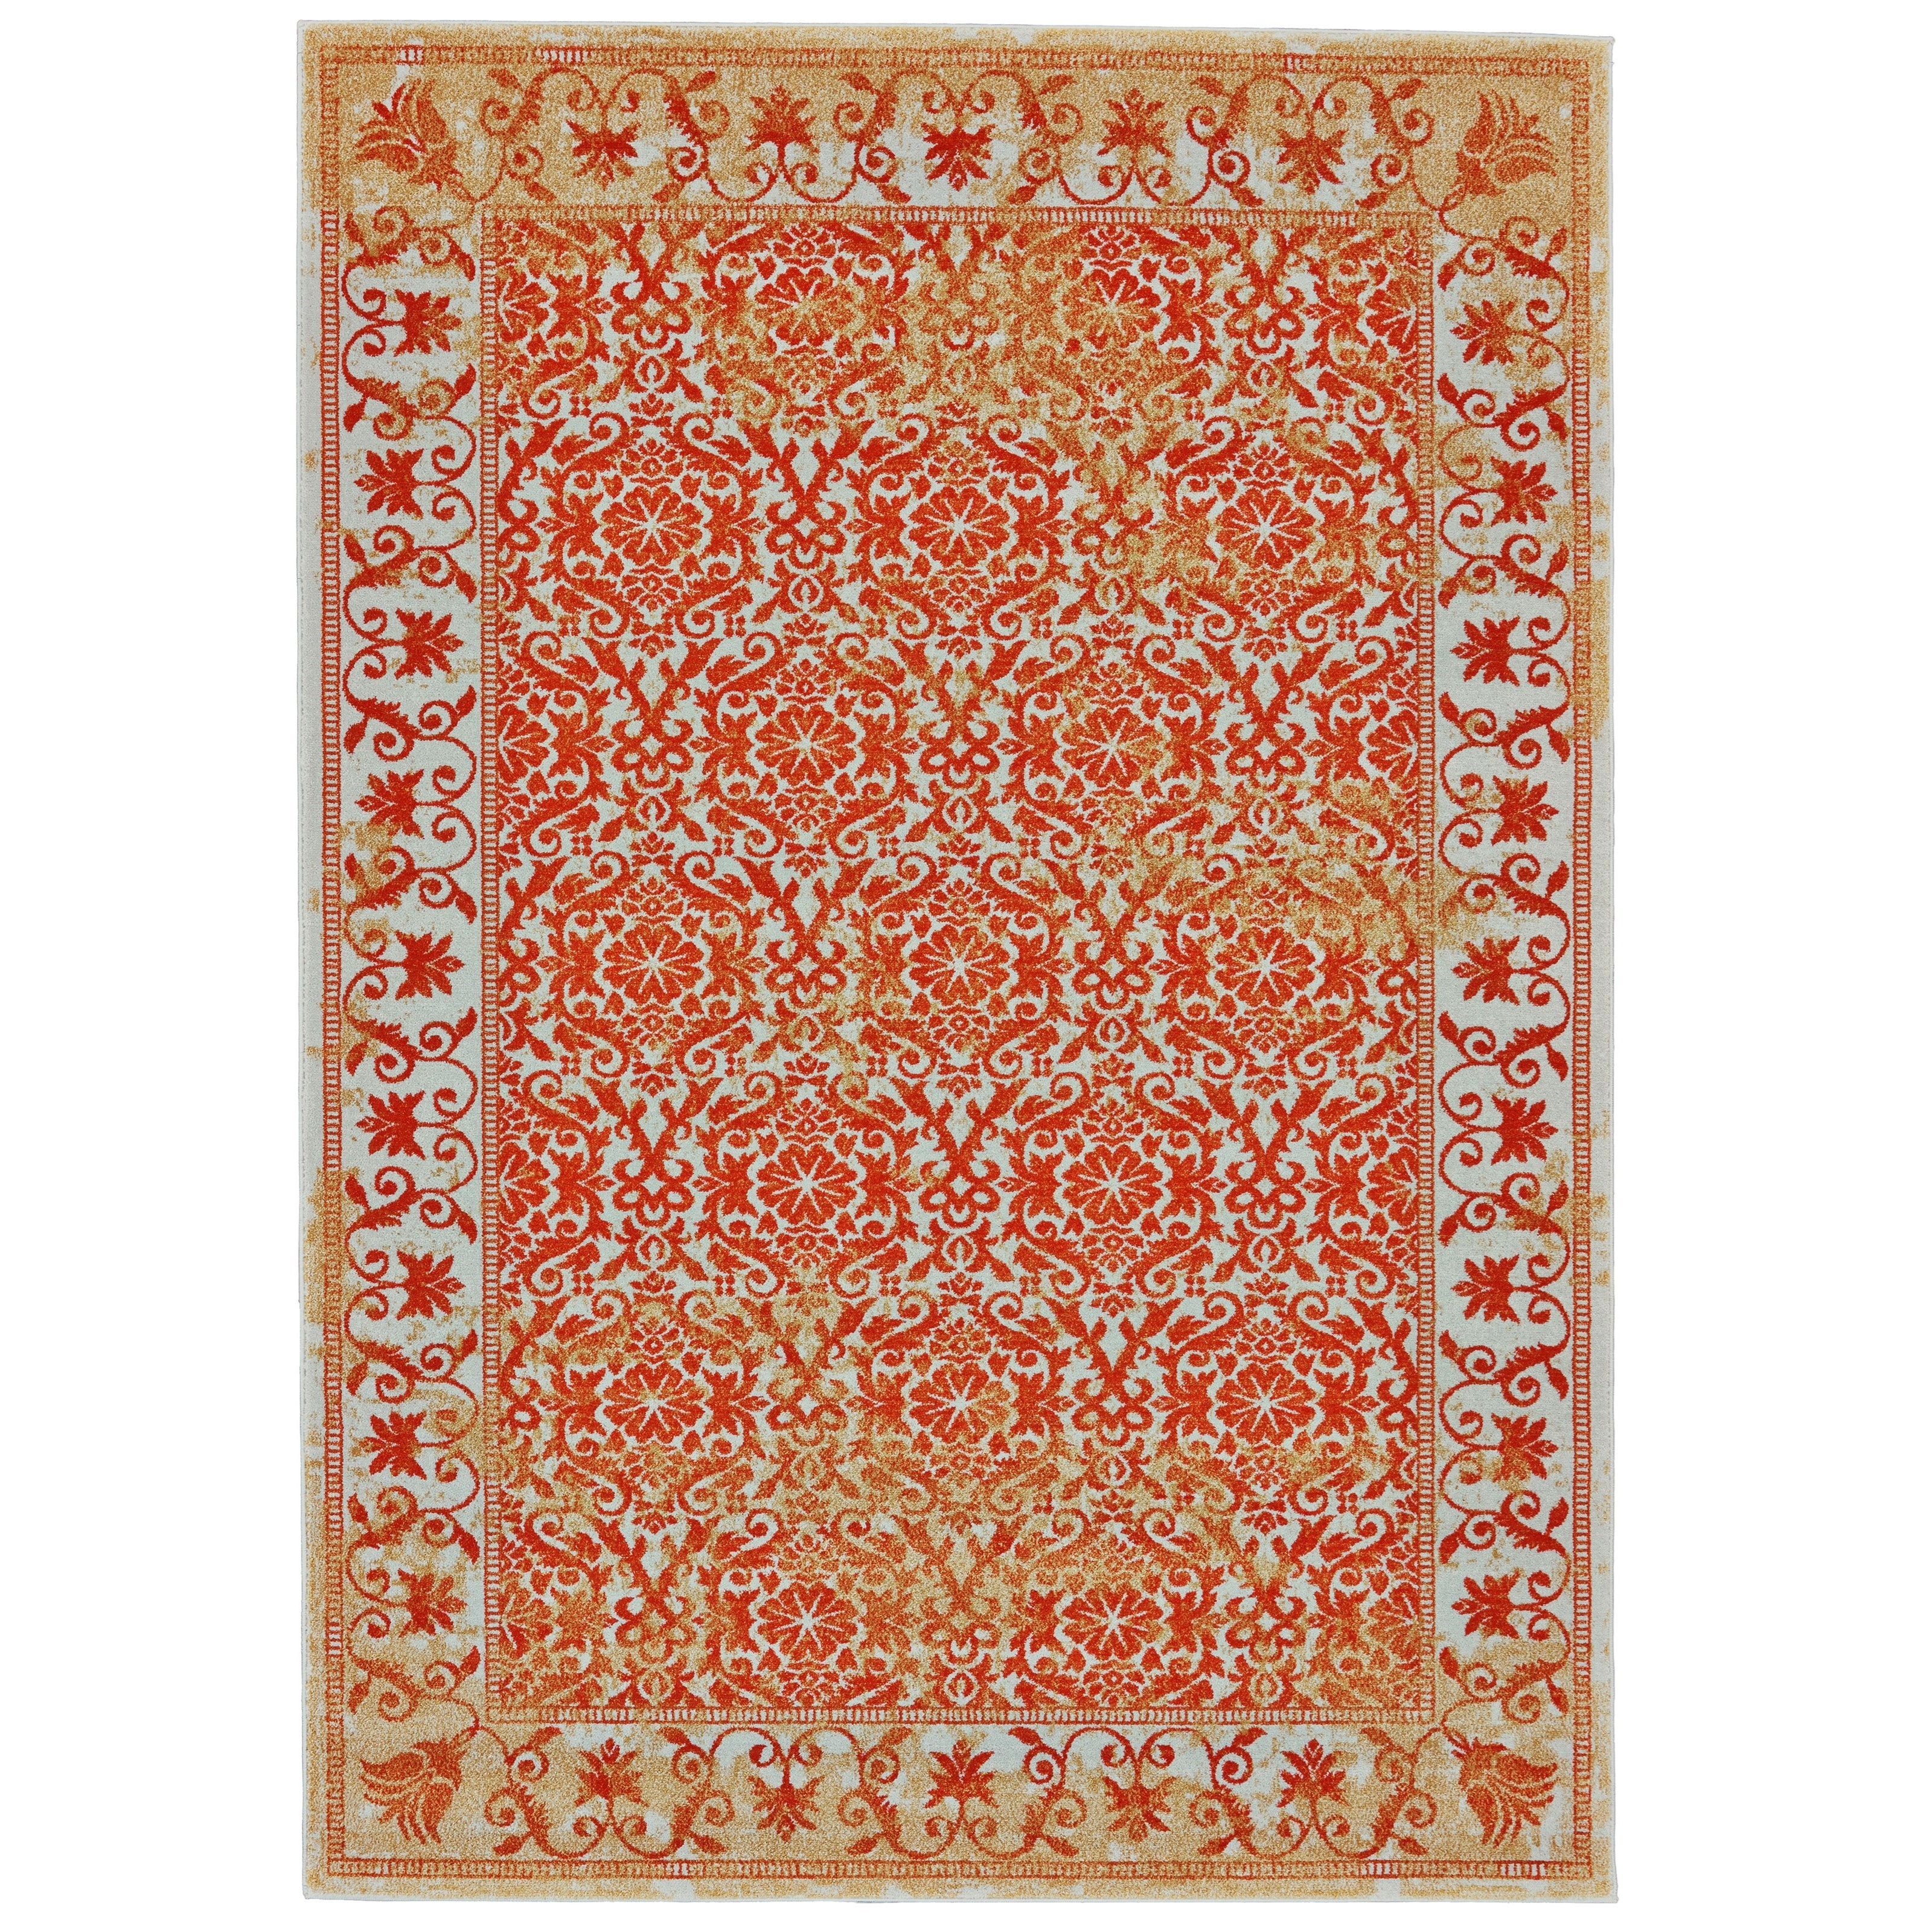 Archean Melon 5' x 8' Area Rug by Feizy Rugs at Sprintz Furniture